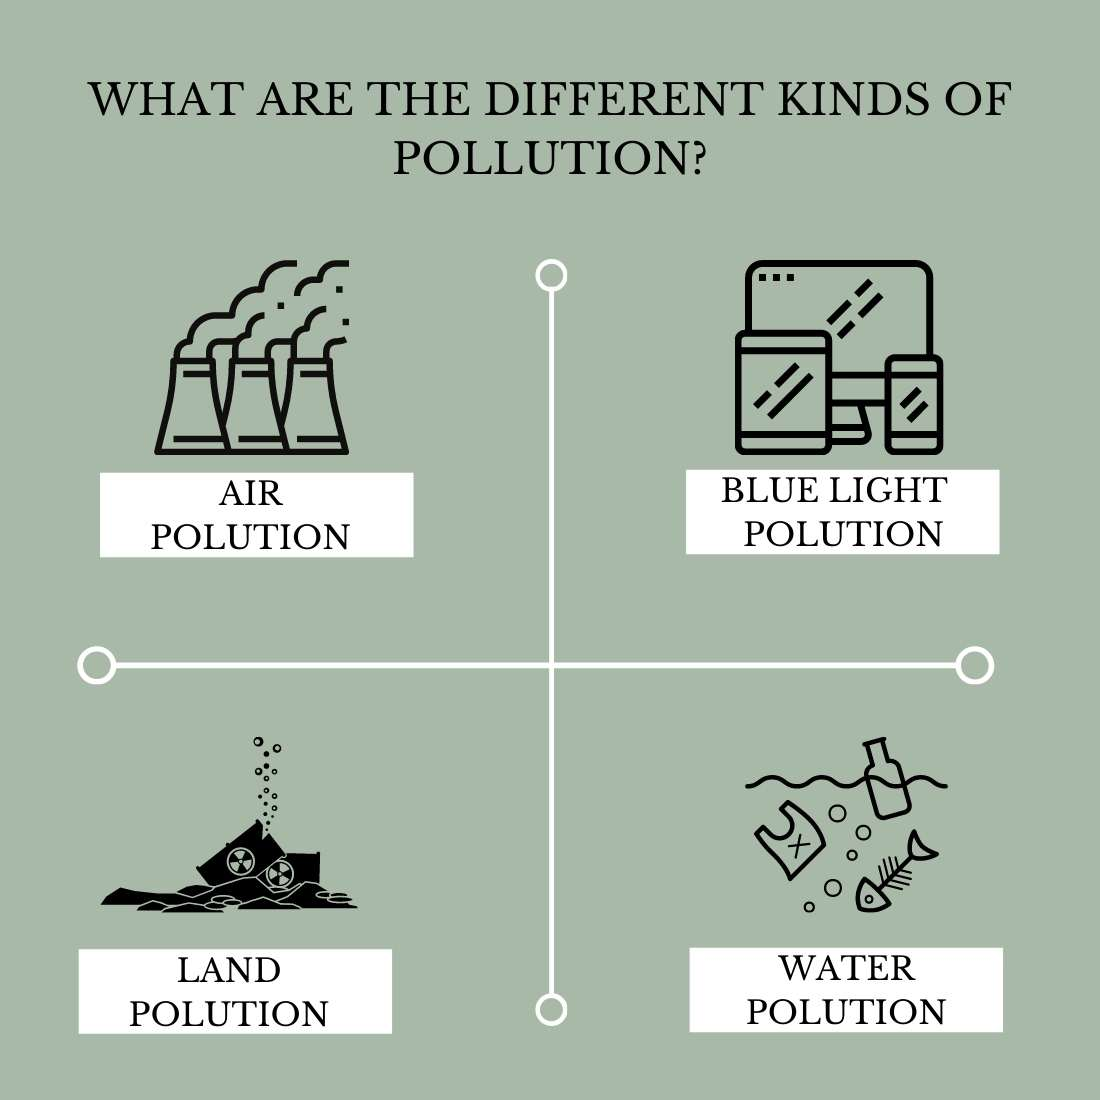 This is an image showing different kind of pollution affecting the skin.